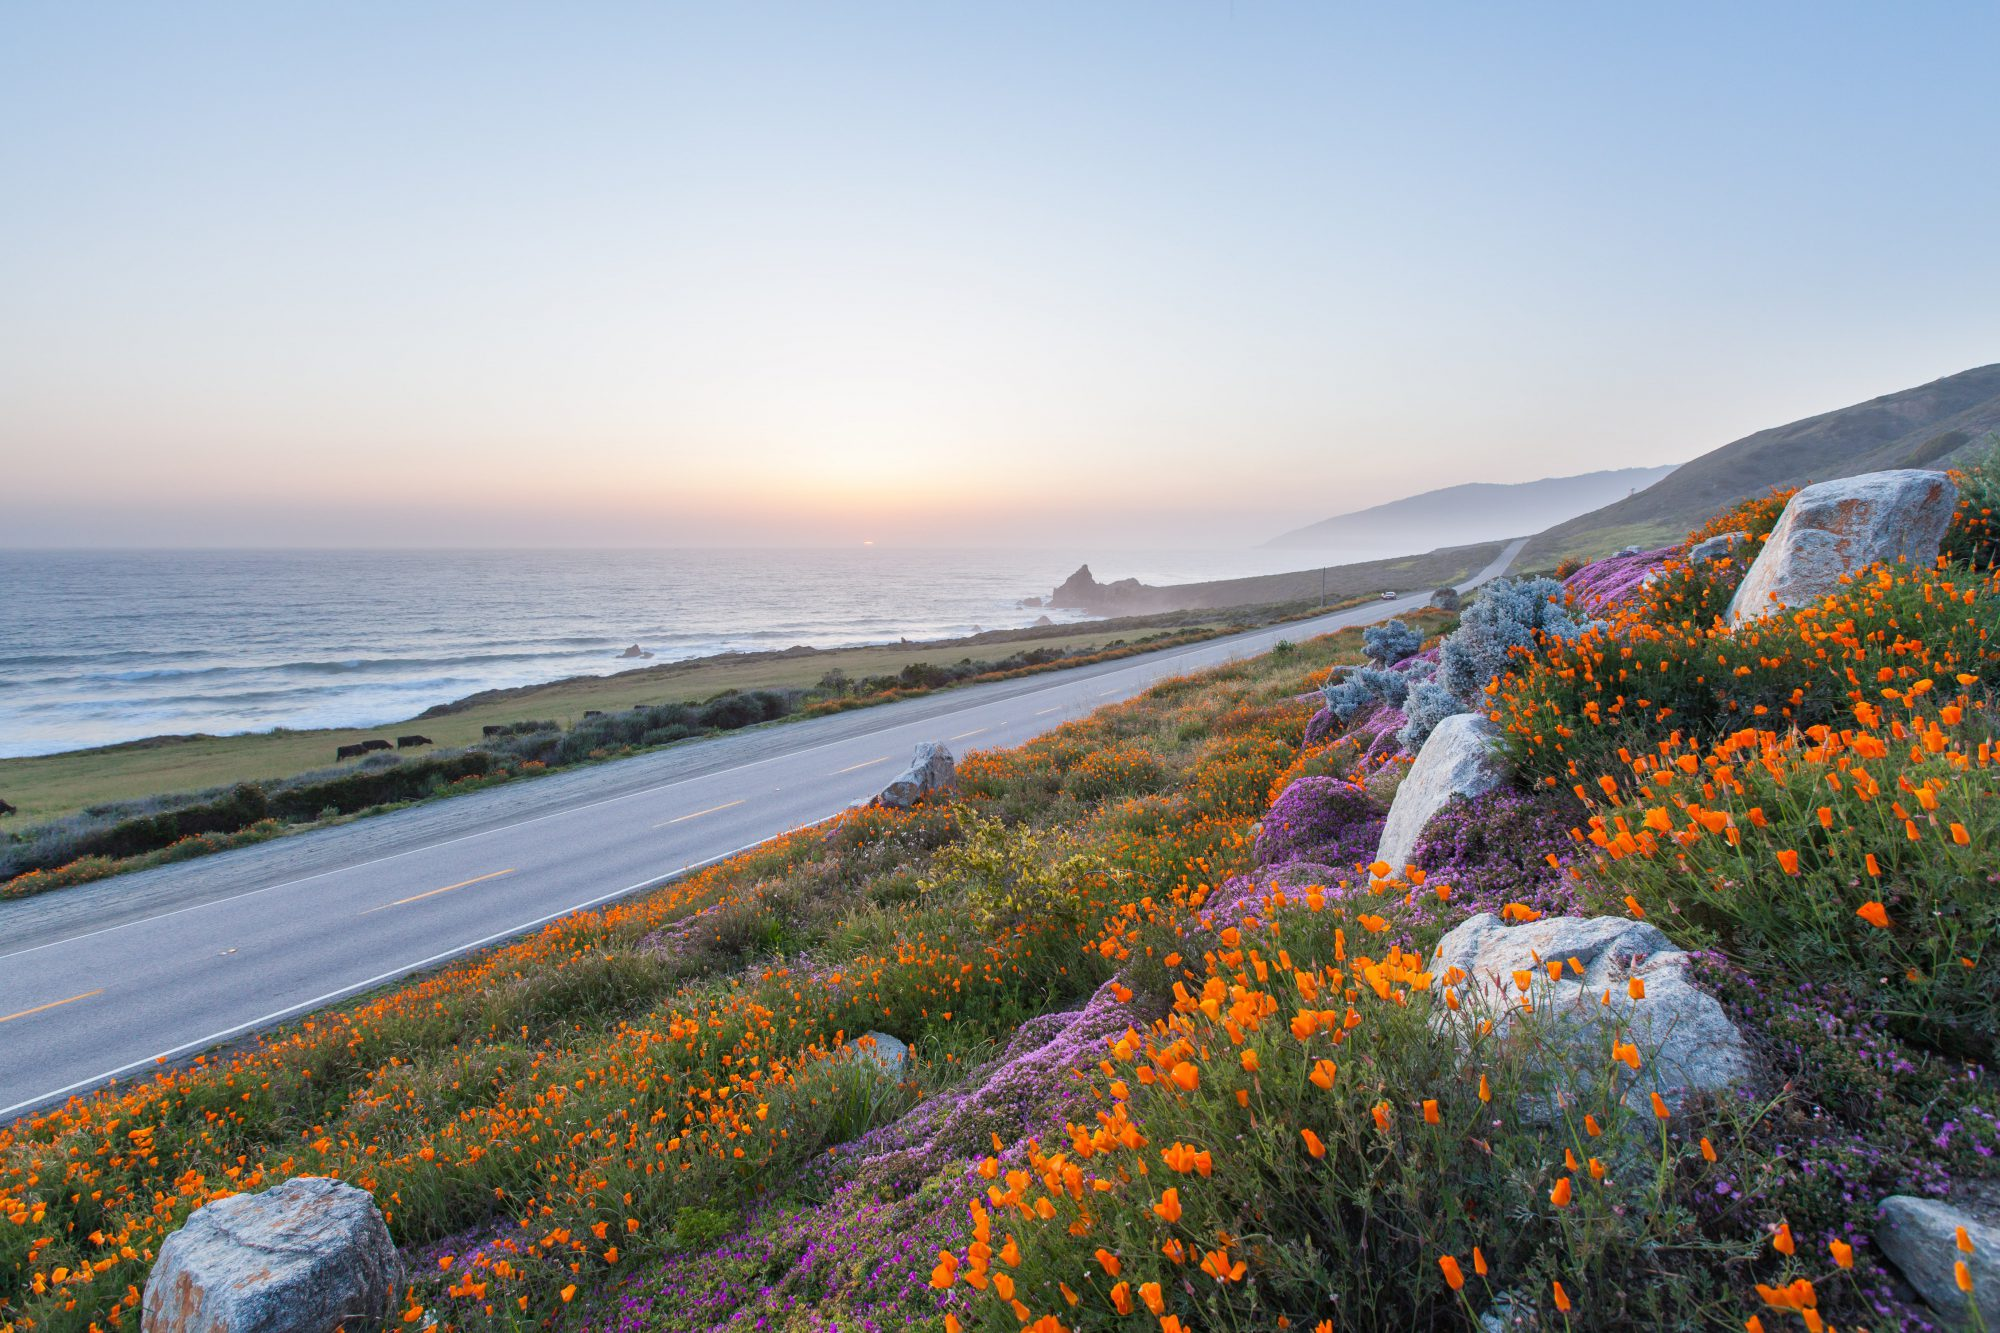 A picture of a beach road with beautiful flowers - Bodega Bay